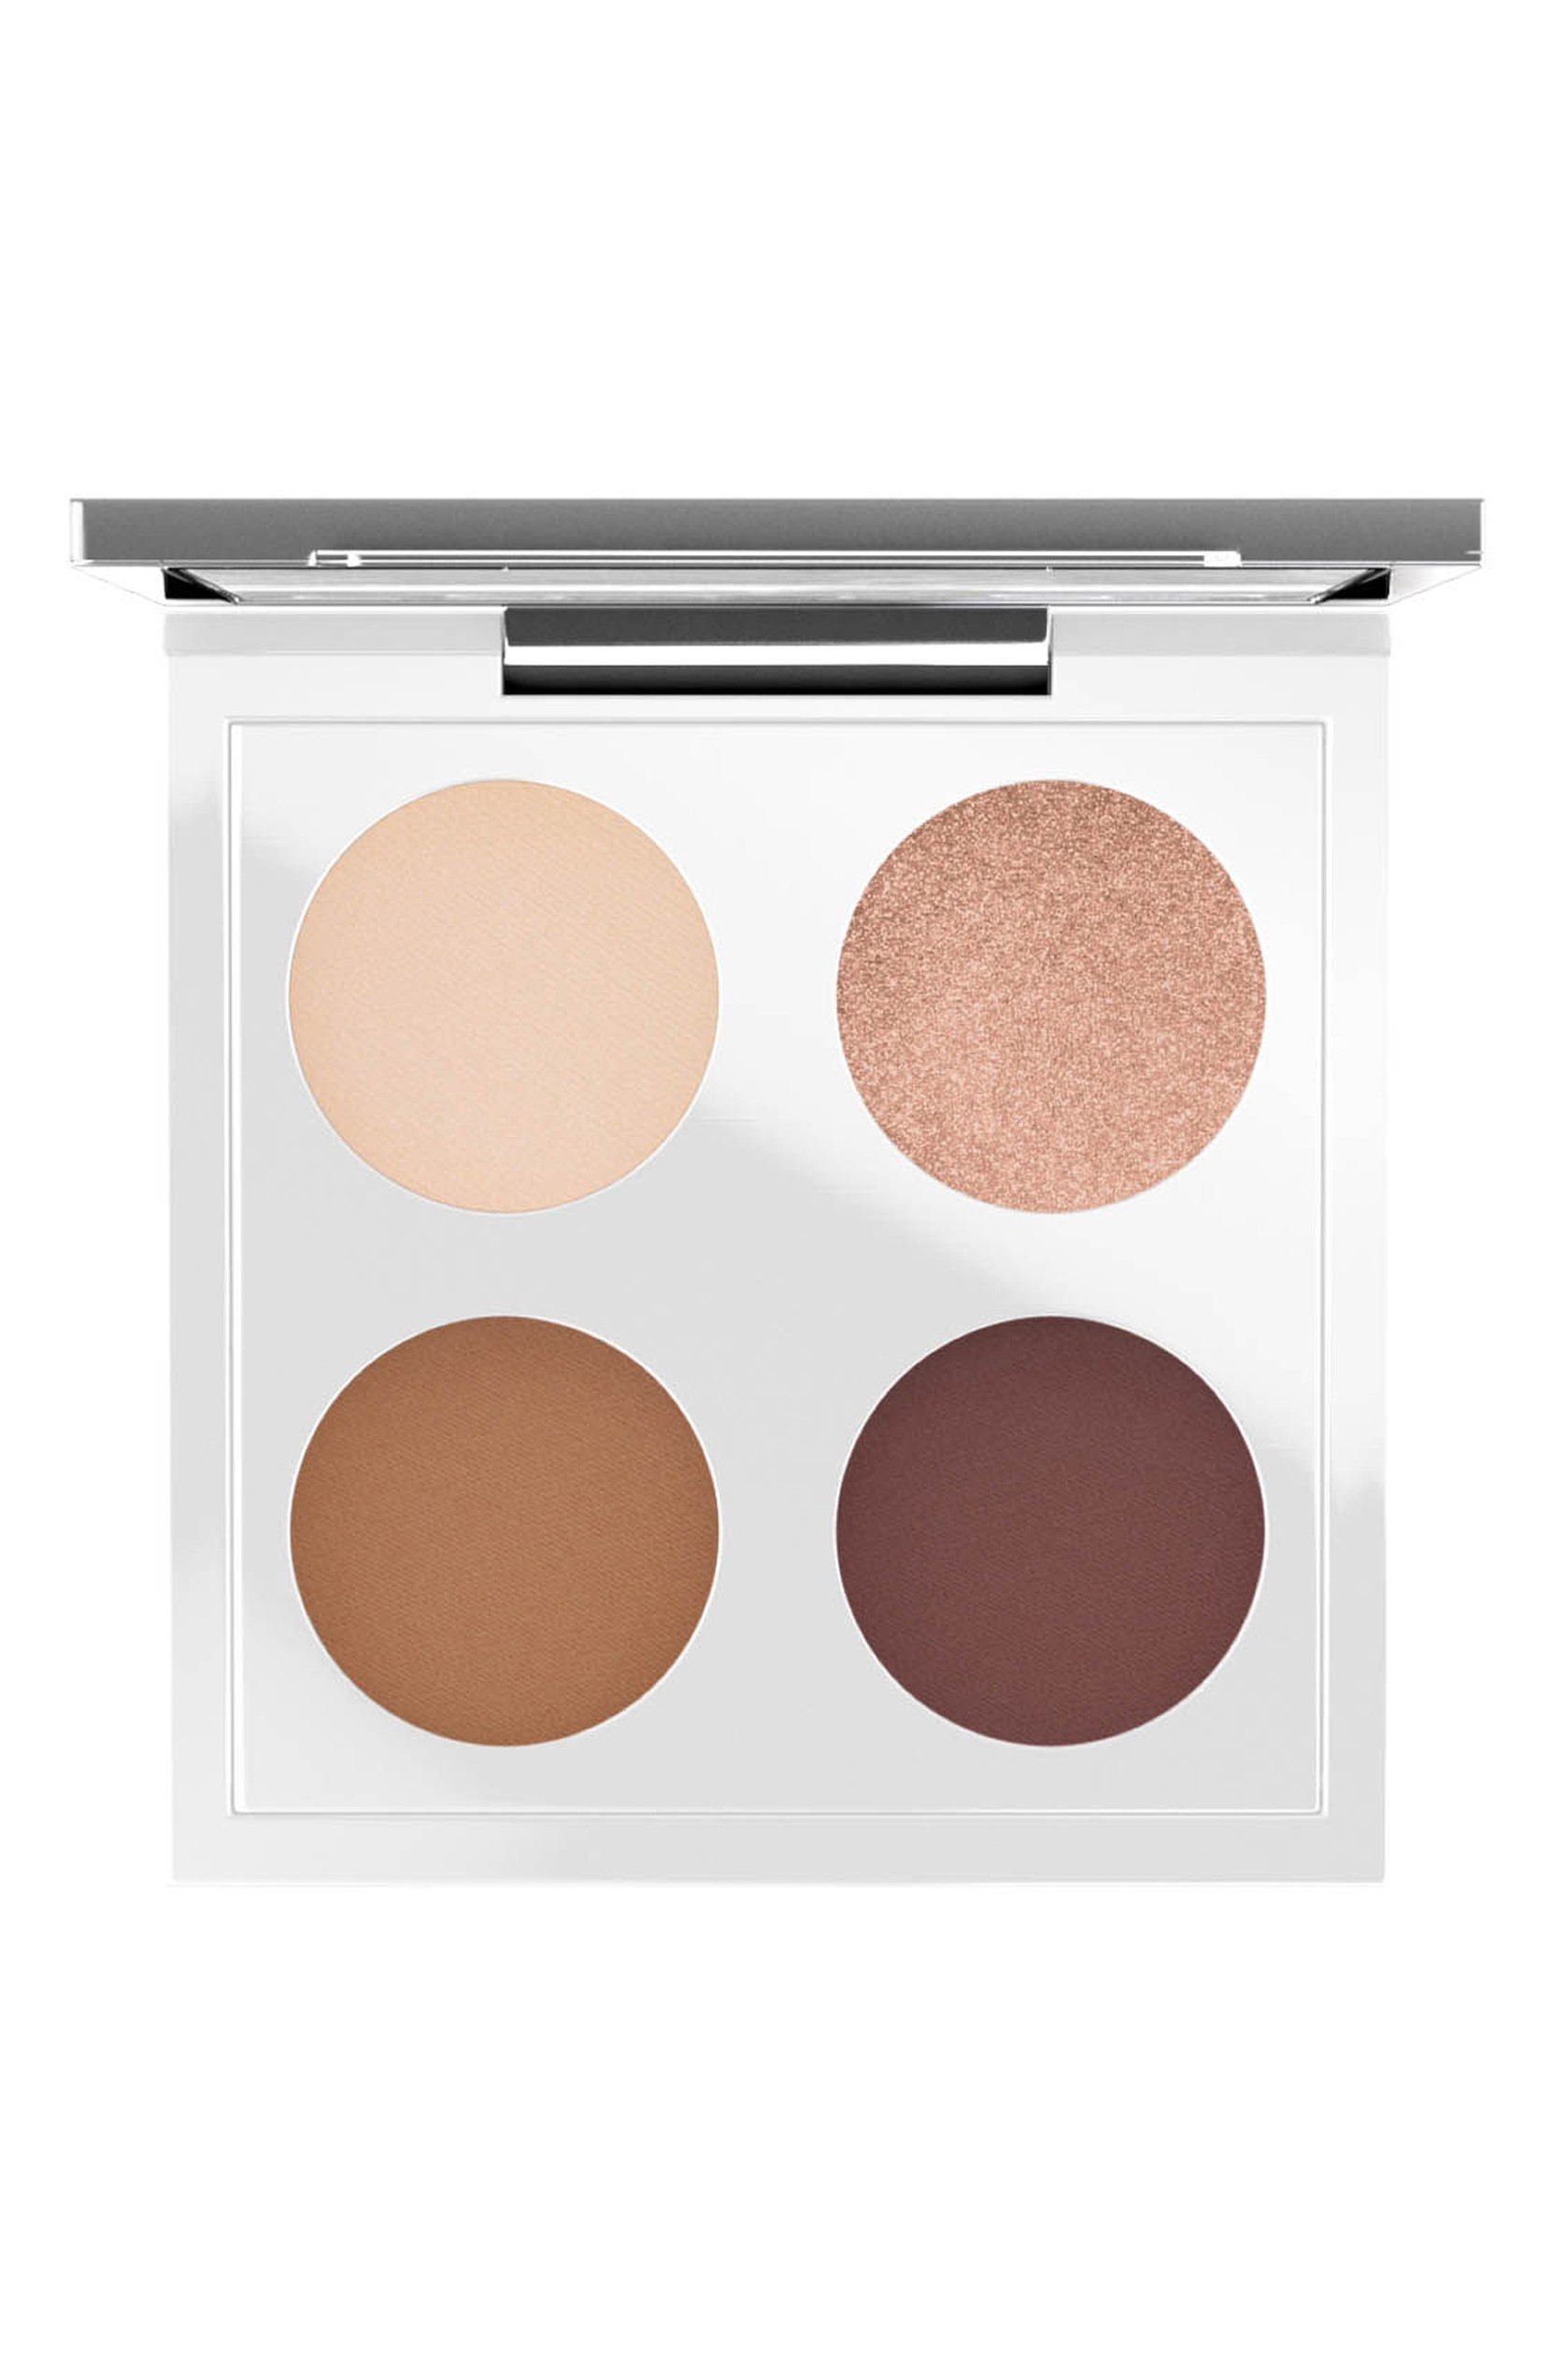 MAC x Patrickstarrr Eyeshadow Palette was originally $32.00 and is now $19.20 (Image: Nordstrom).